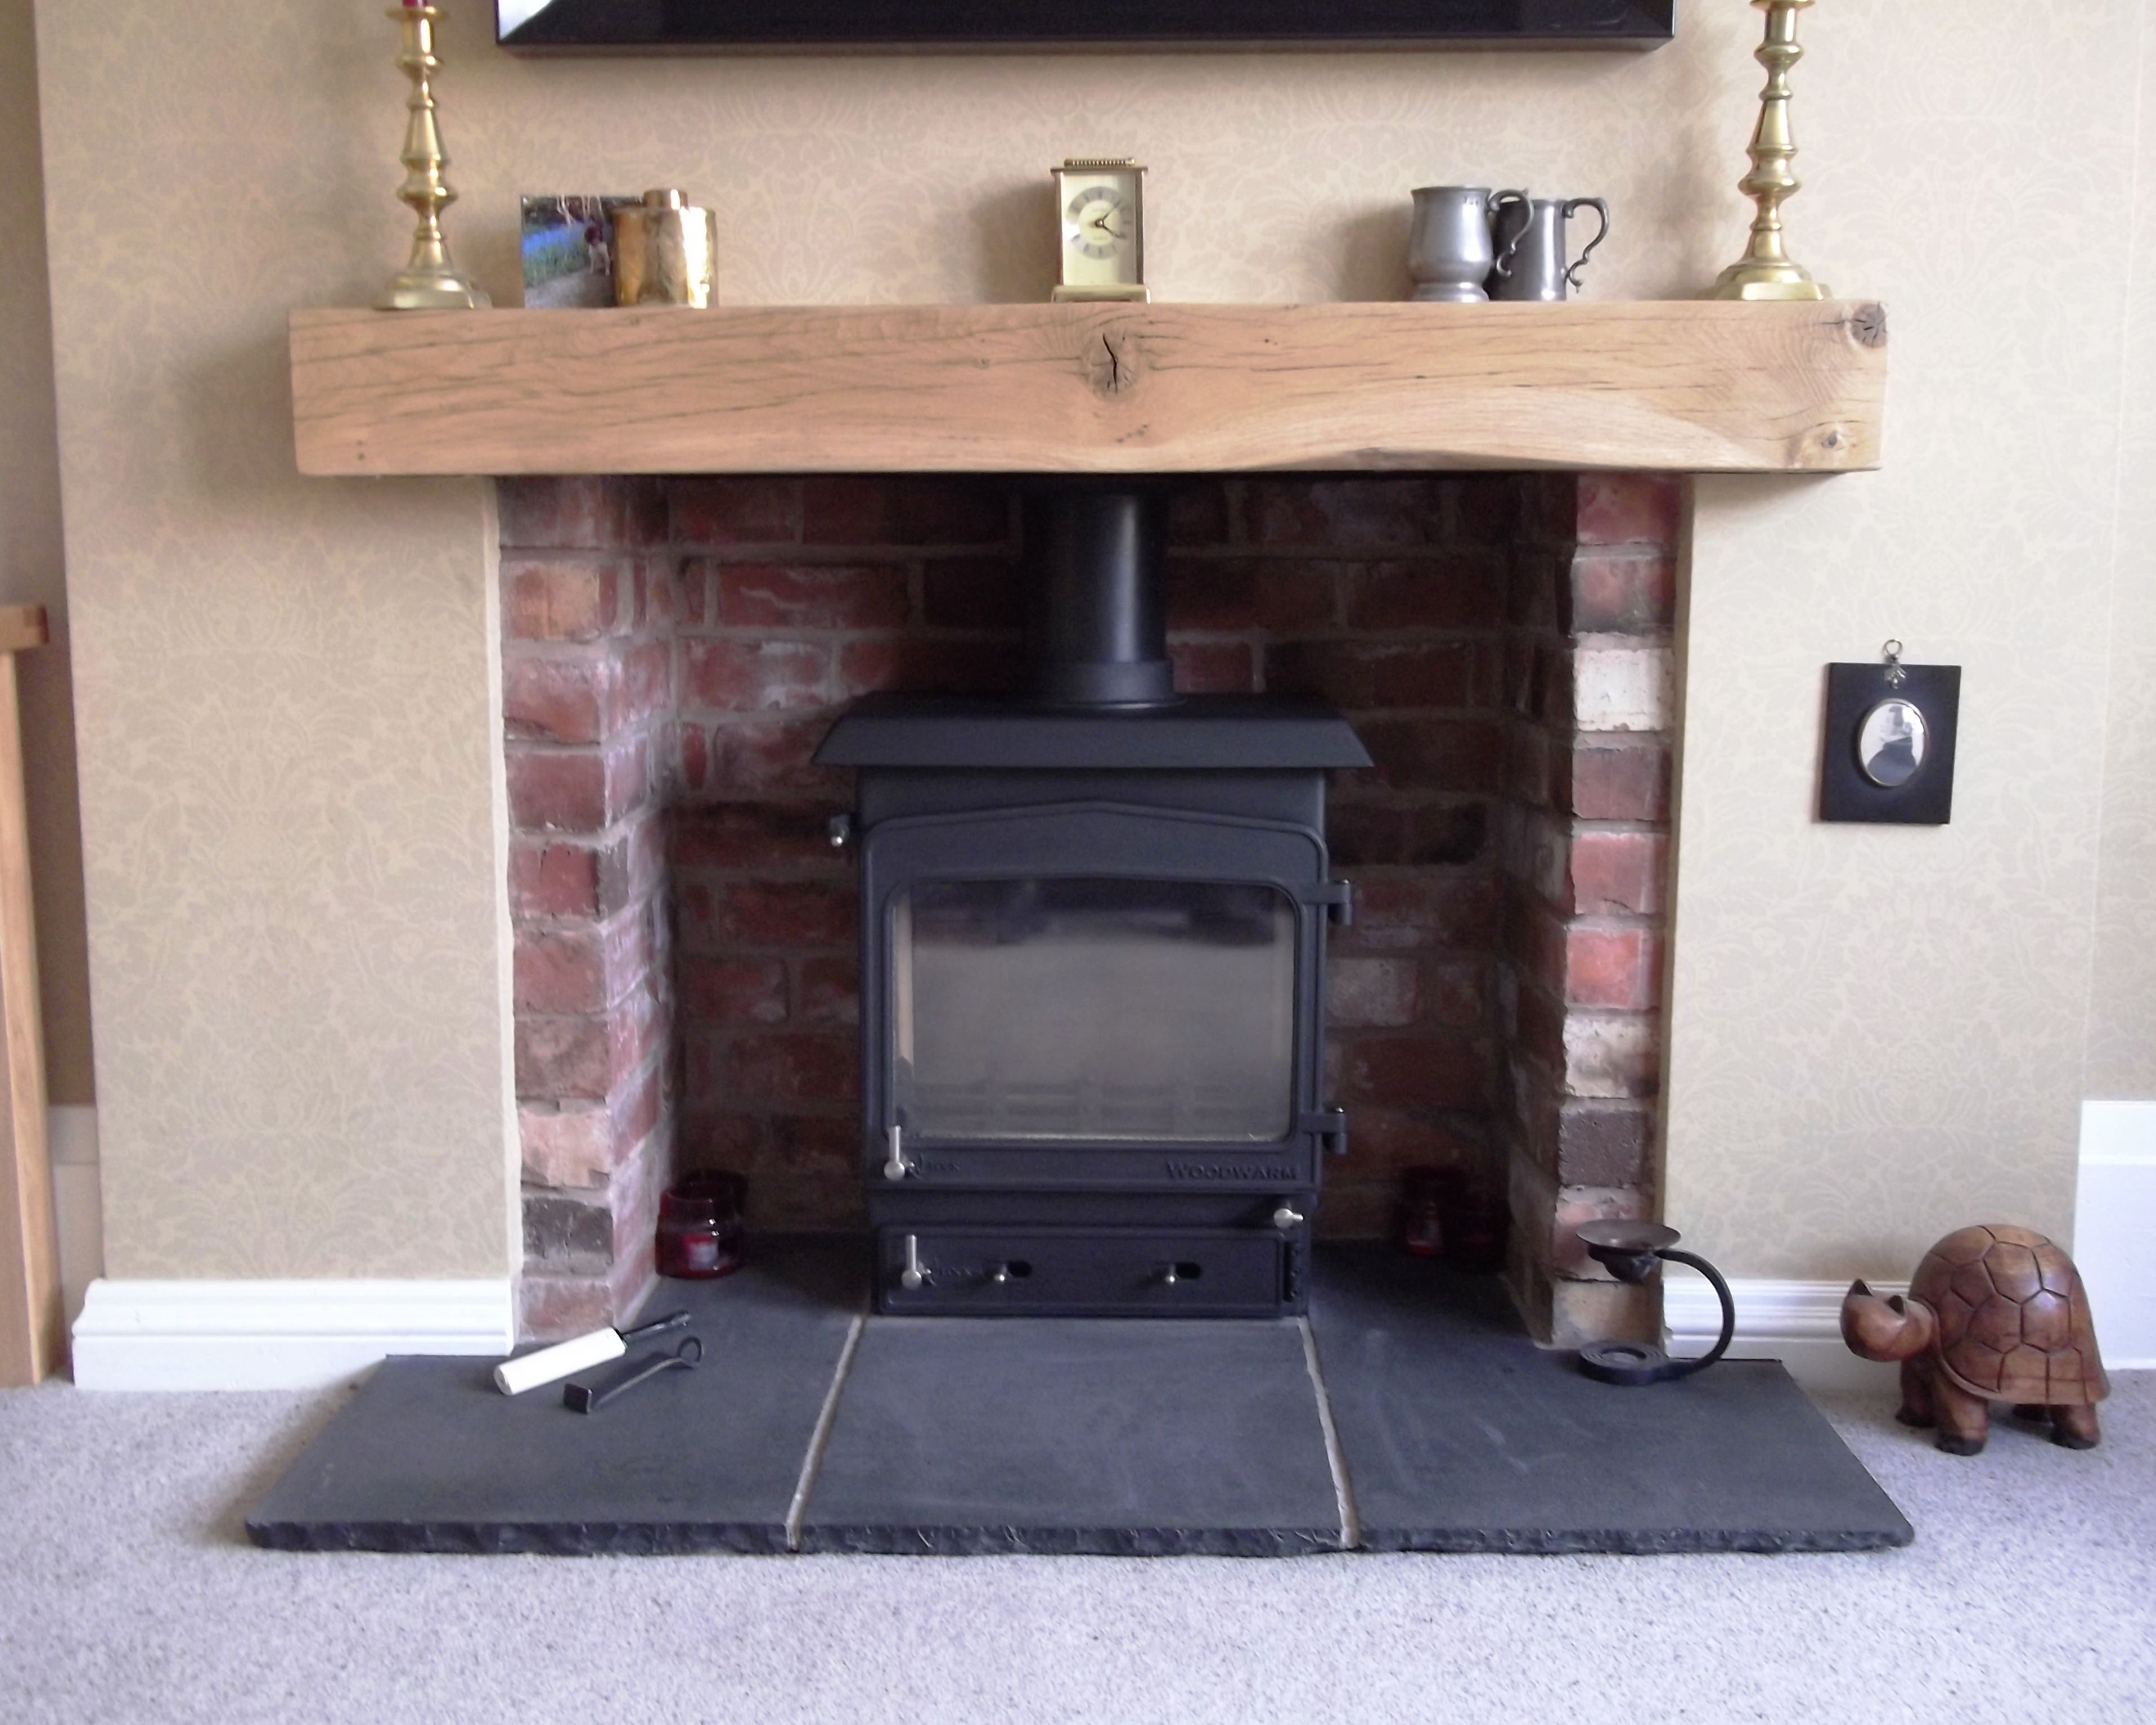 copper firewood tub wood holder for fireplace cast iron stove